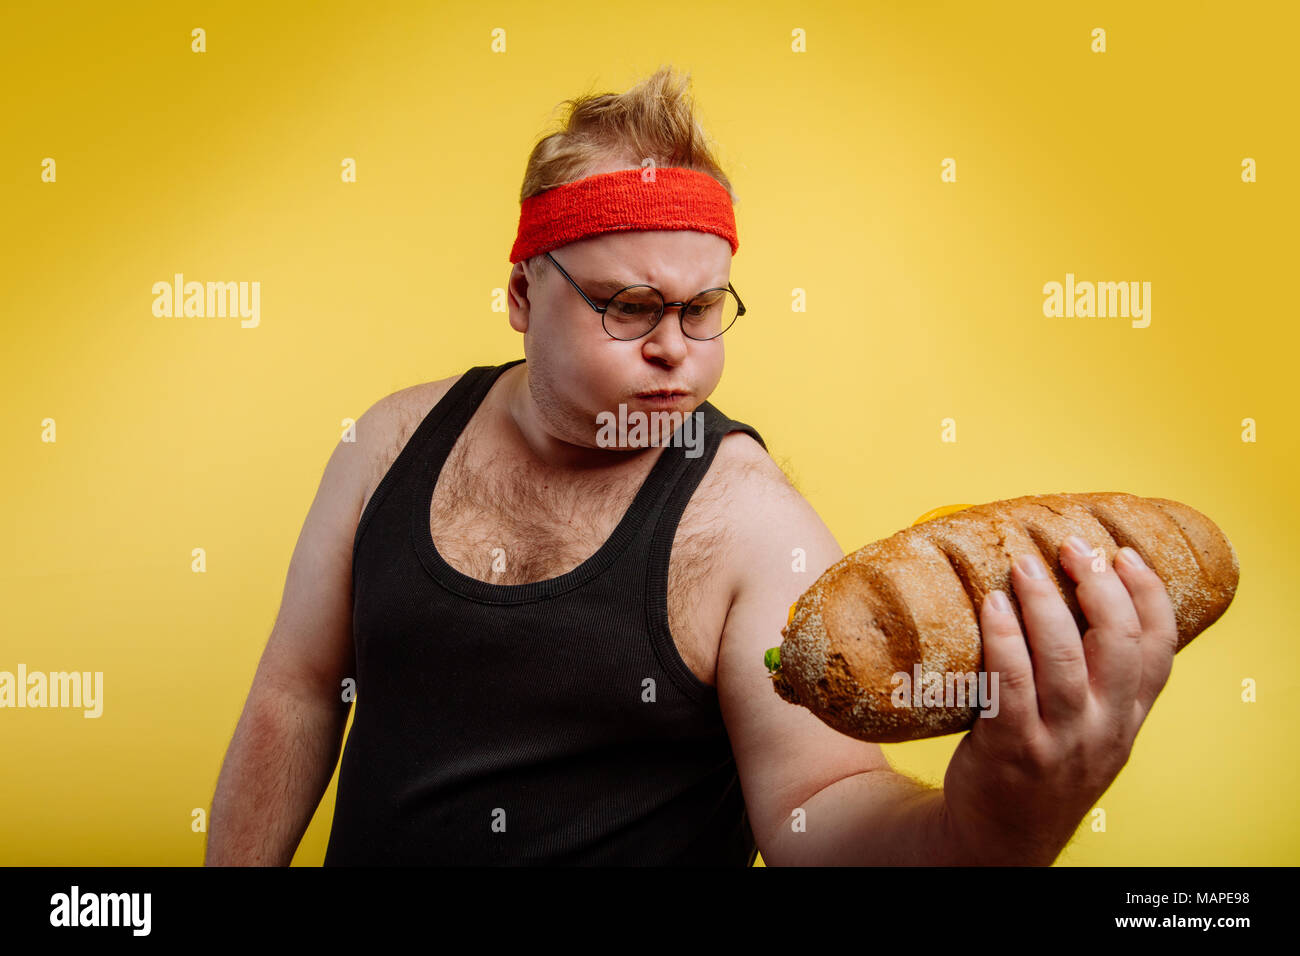 funny fat man sweats while lifting burger - Stock Image